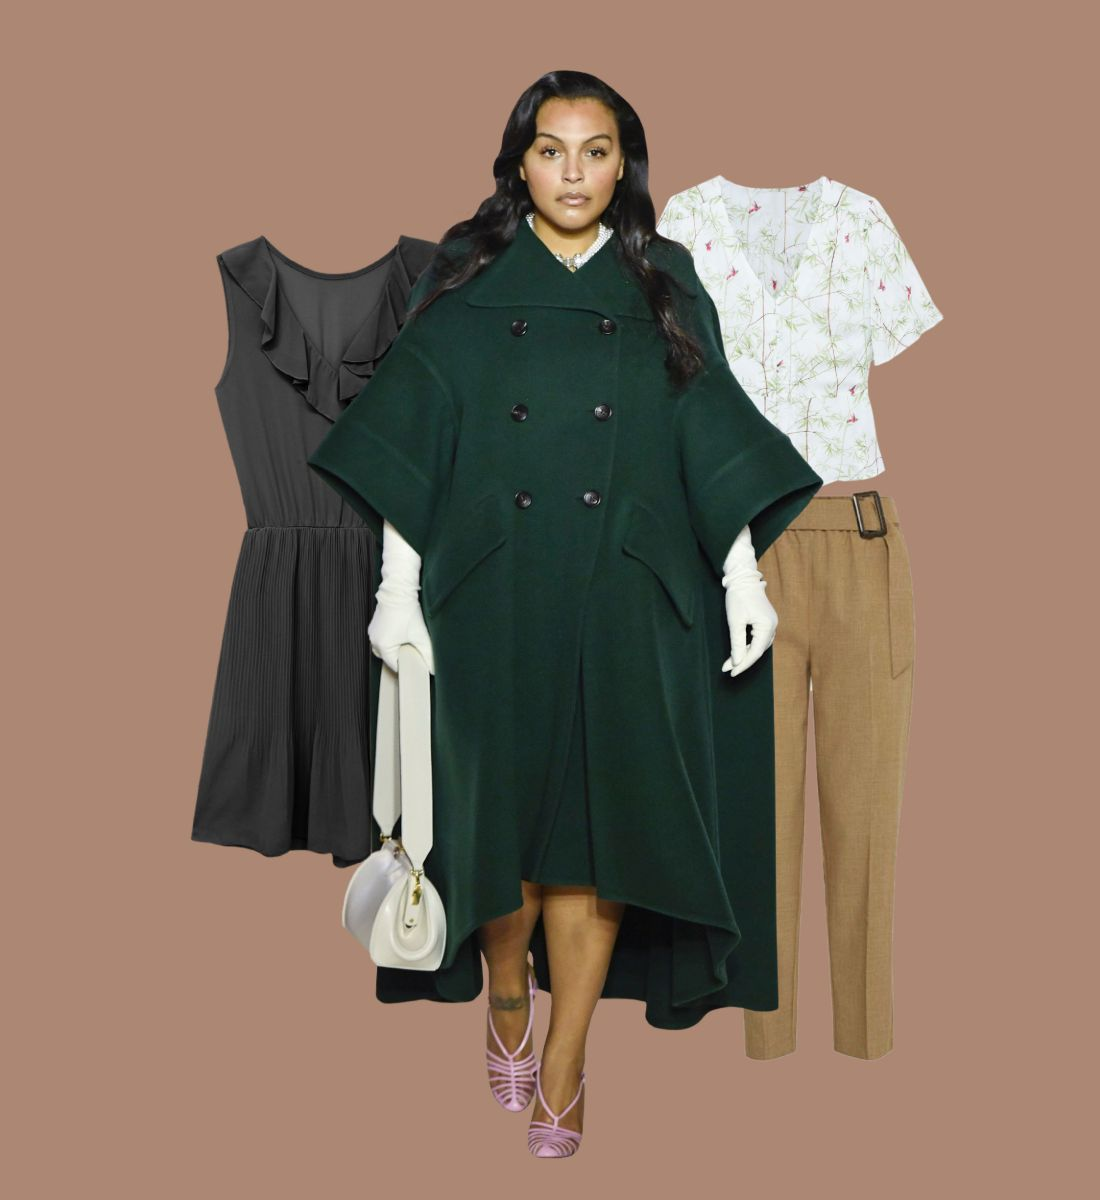 Plus Size Style Guide